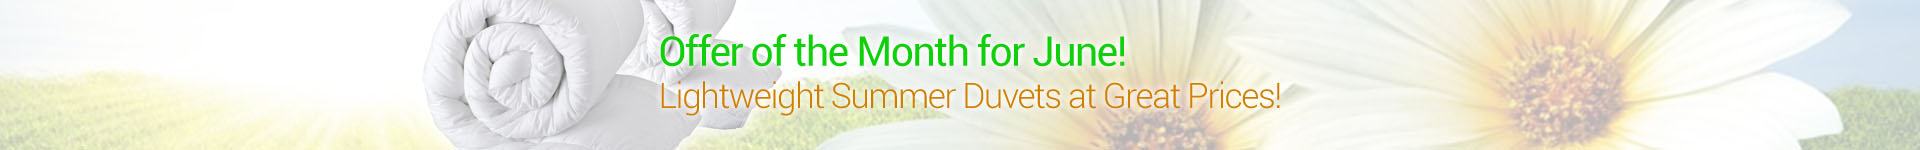 Offer of the Month!� 4.5 TOG, lightweight summer duvets are on special offer for the whole of June!